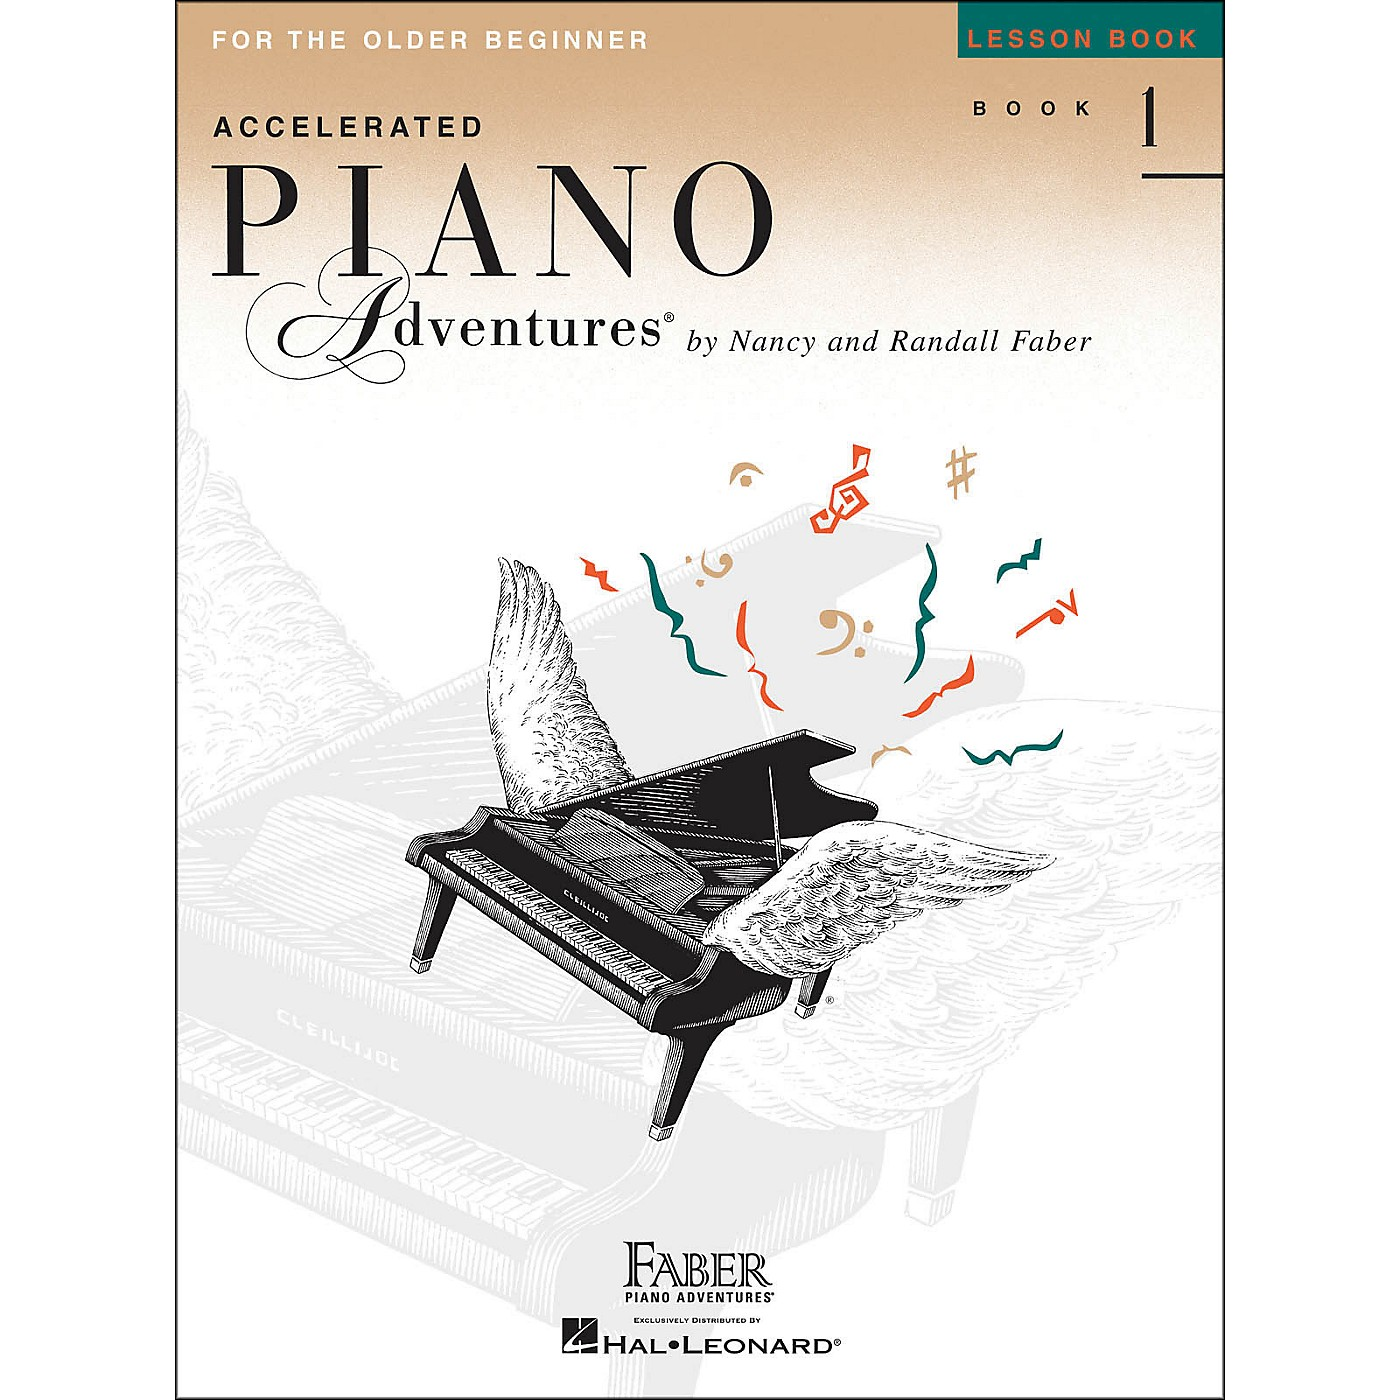 Faber Piano Adventures Accelerated Piano Adventures Lesson Book - Book 1 For The Older Beginner thumbnail